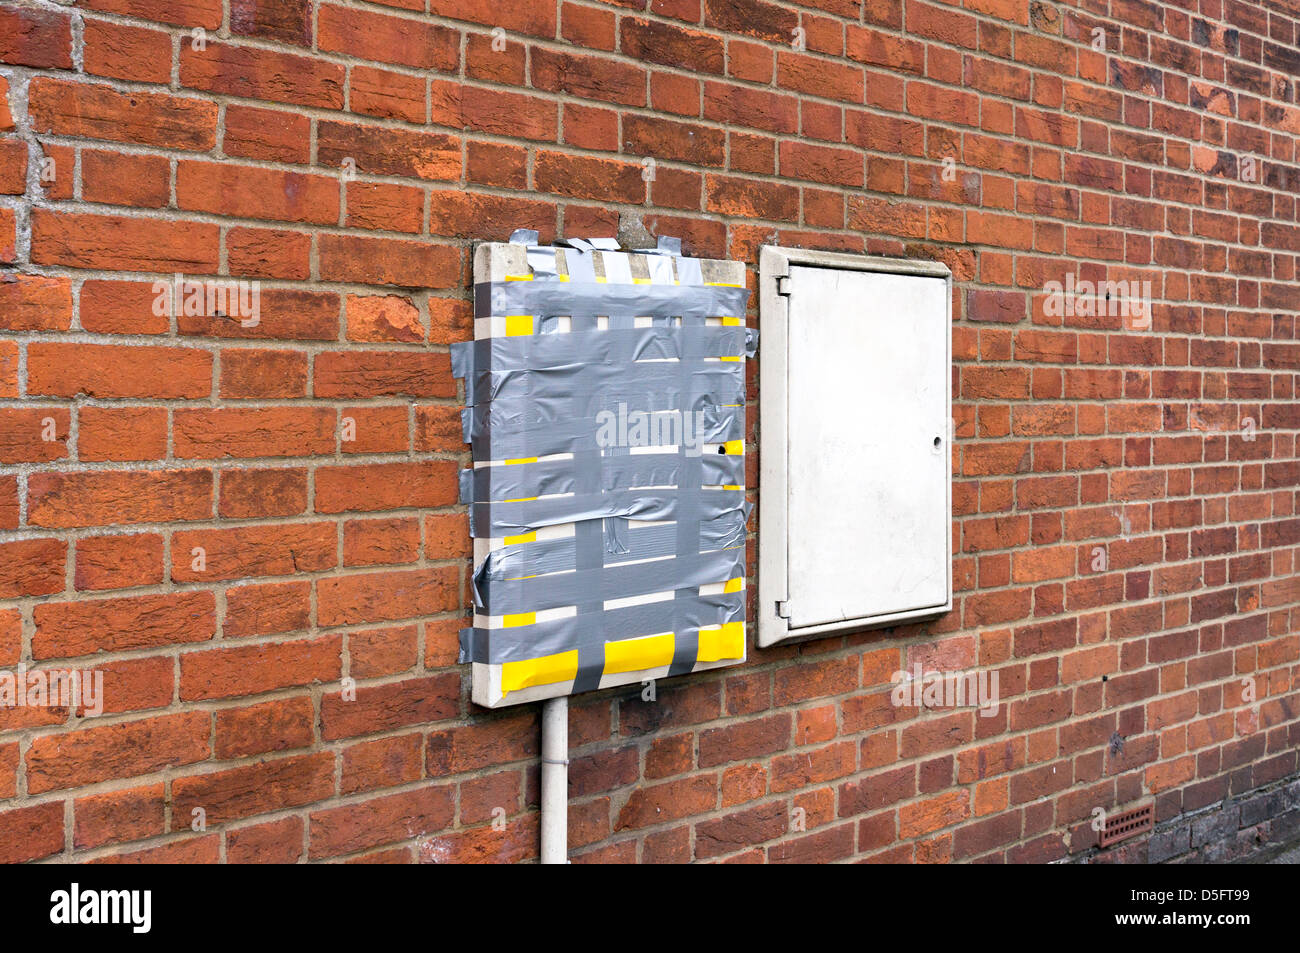 Broken Service Meter Box On Brick Wall Of A House Held Together With Duct Tape